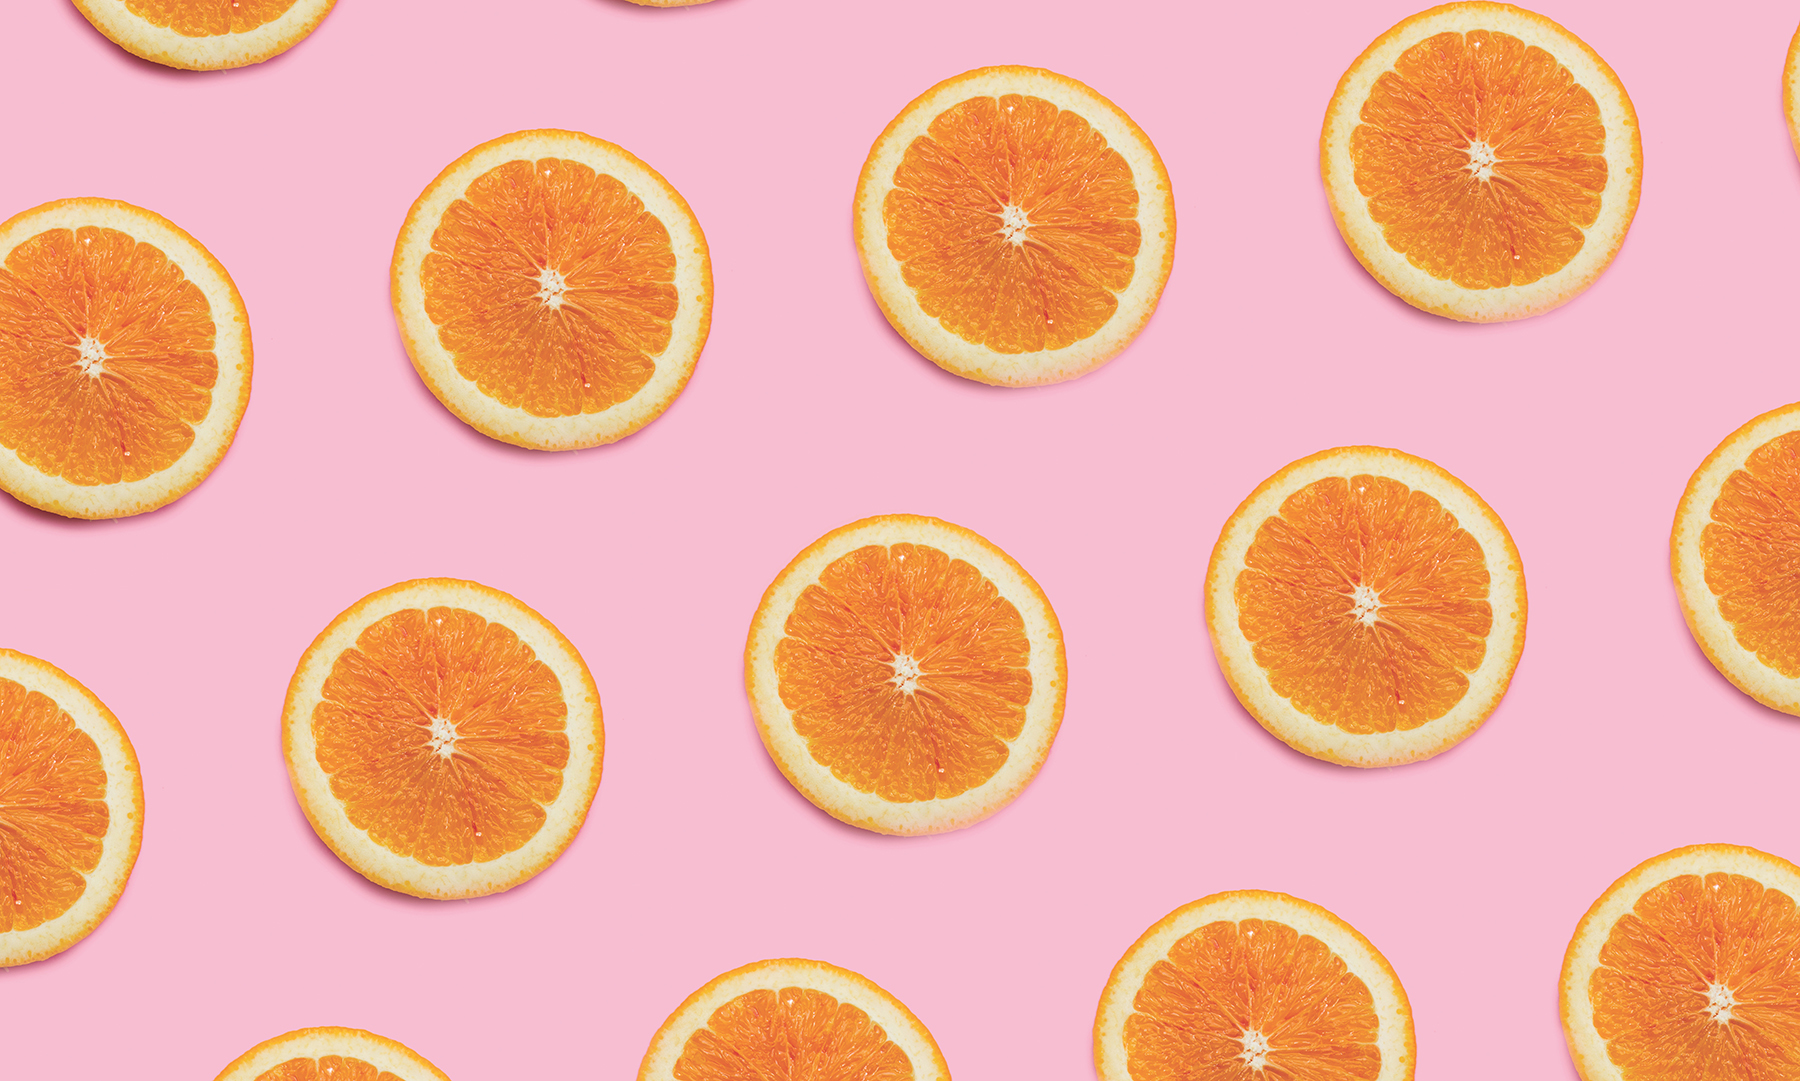 A fruitful pattern of cut oranges on a baby pink background.